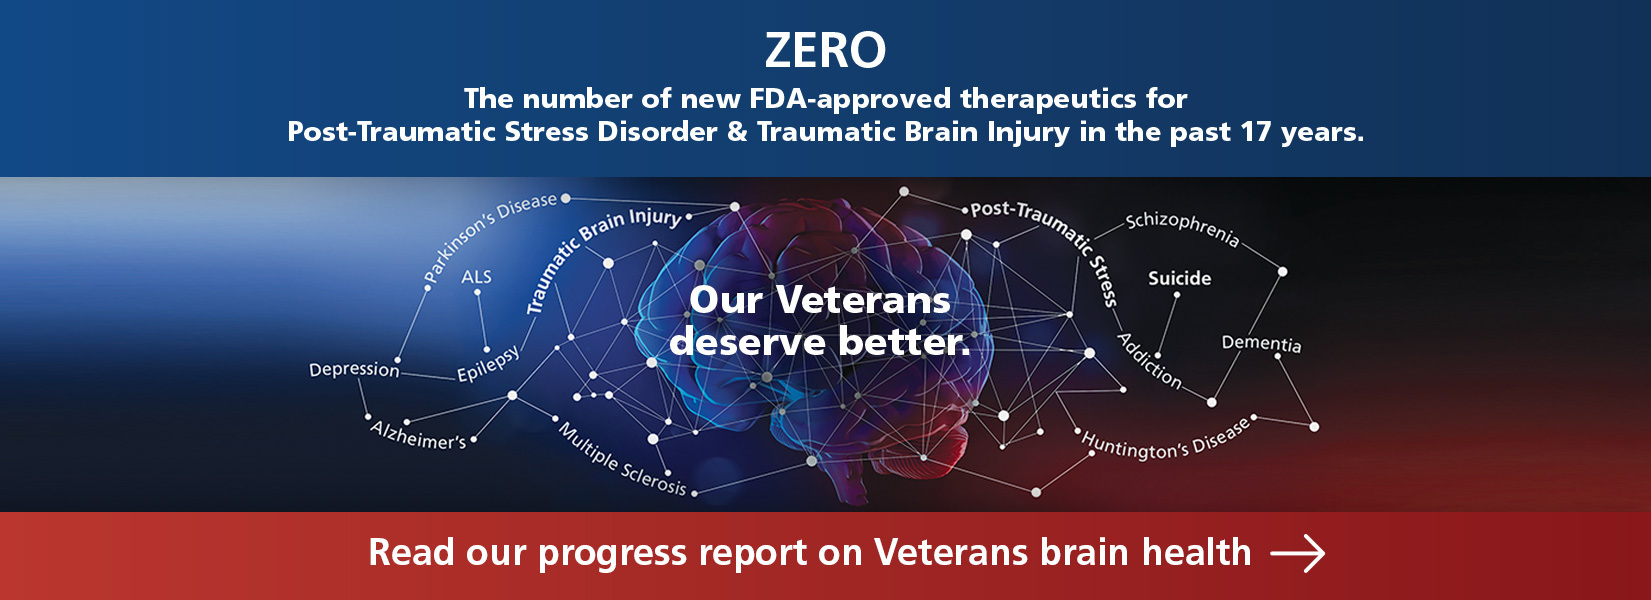 Progress Report on Veterans Brain Health